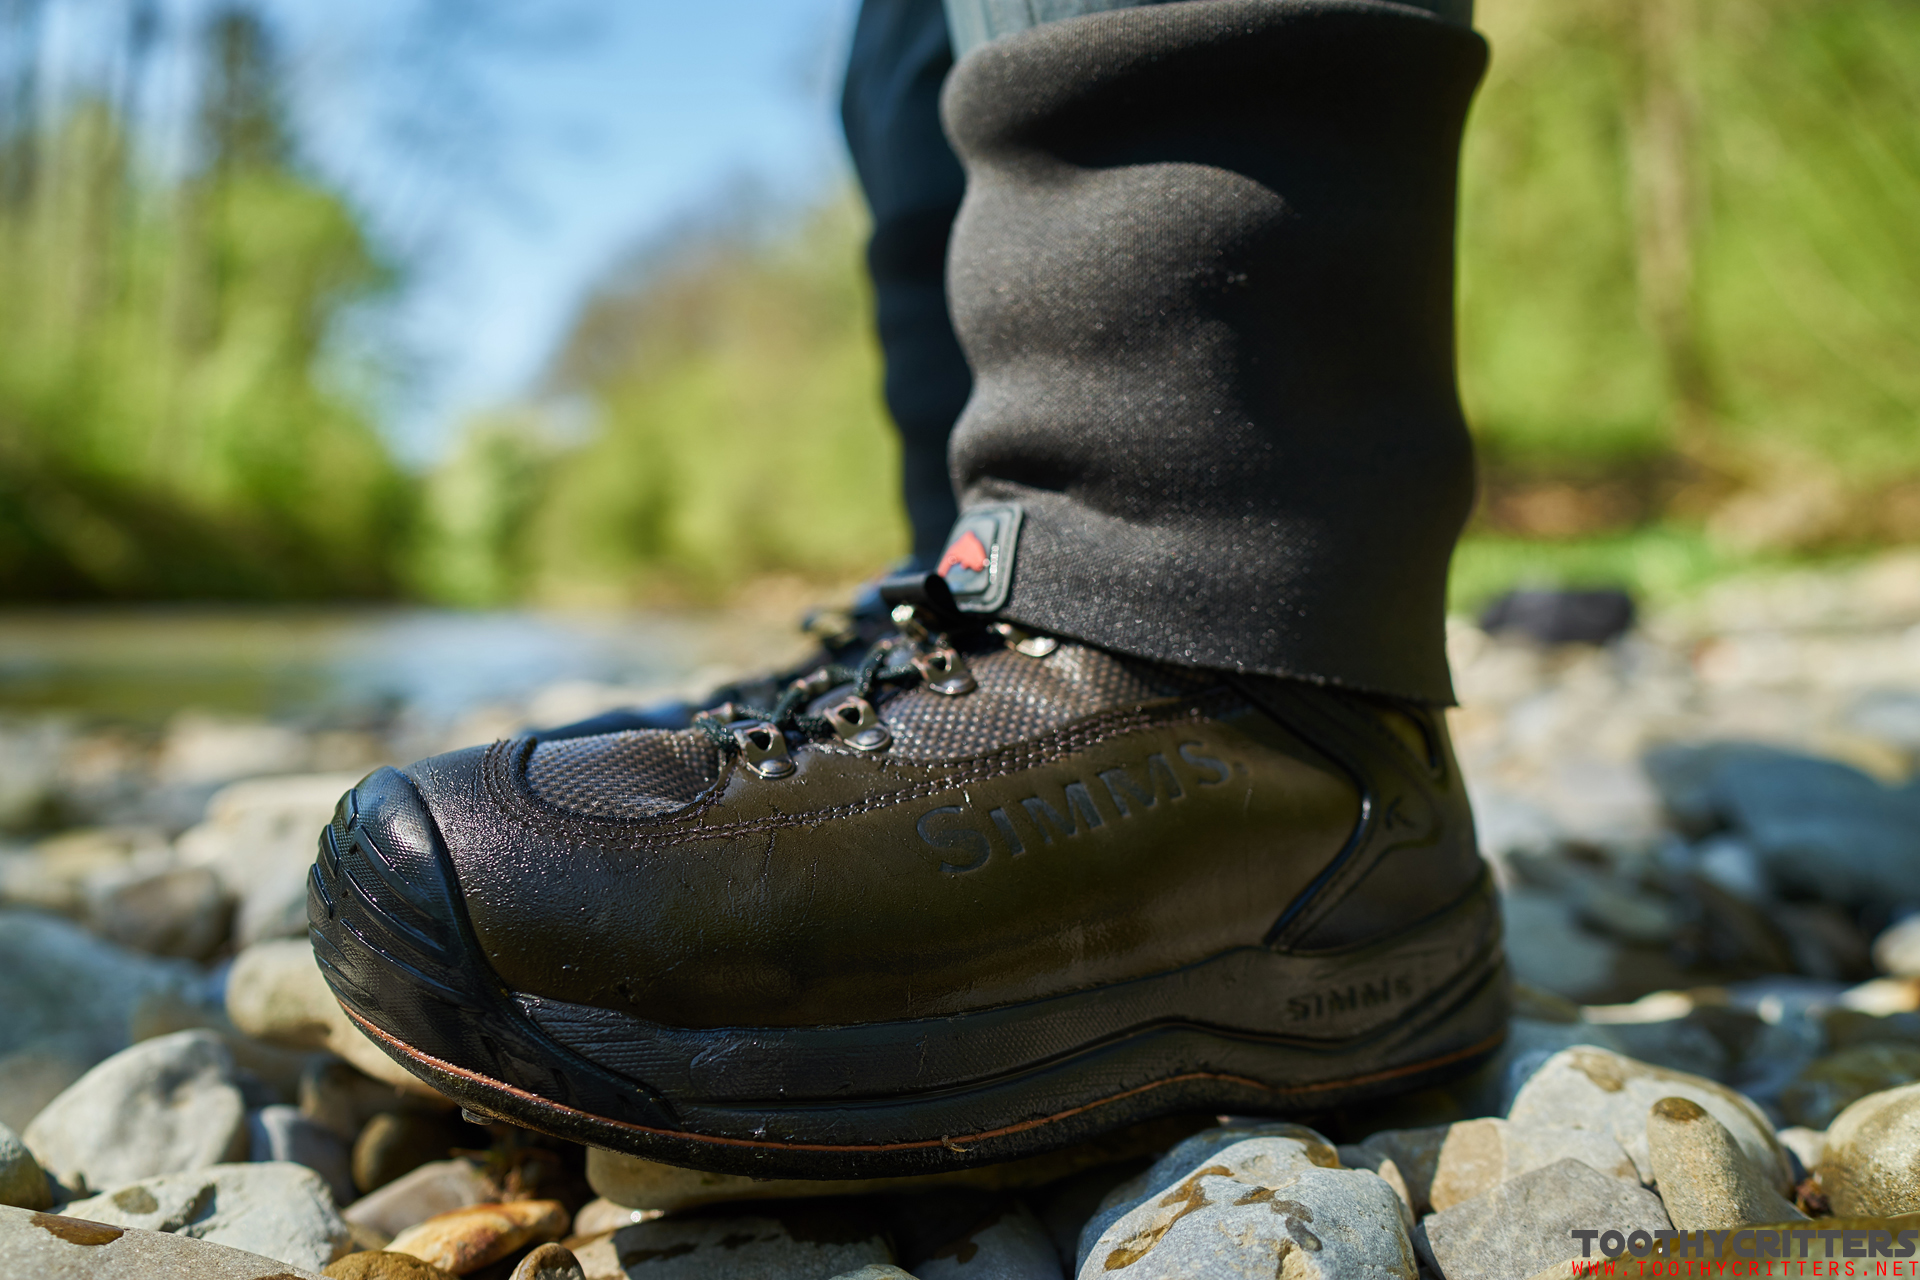 Long Term Review Of The Simms G3 Guide Boot Fly Fishing Blog